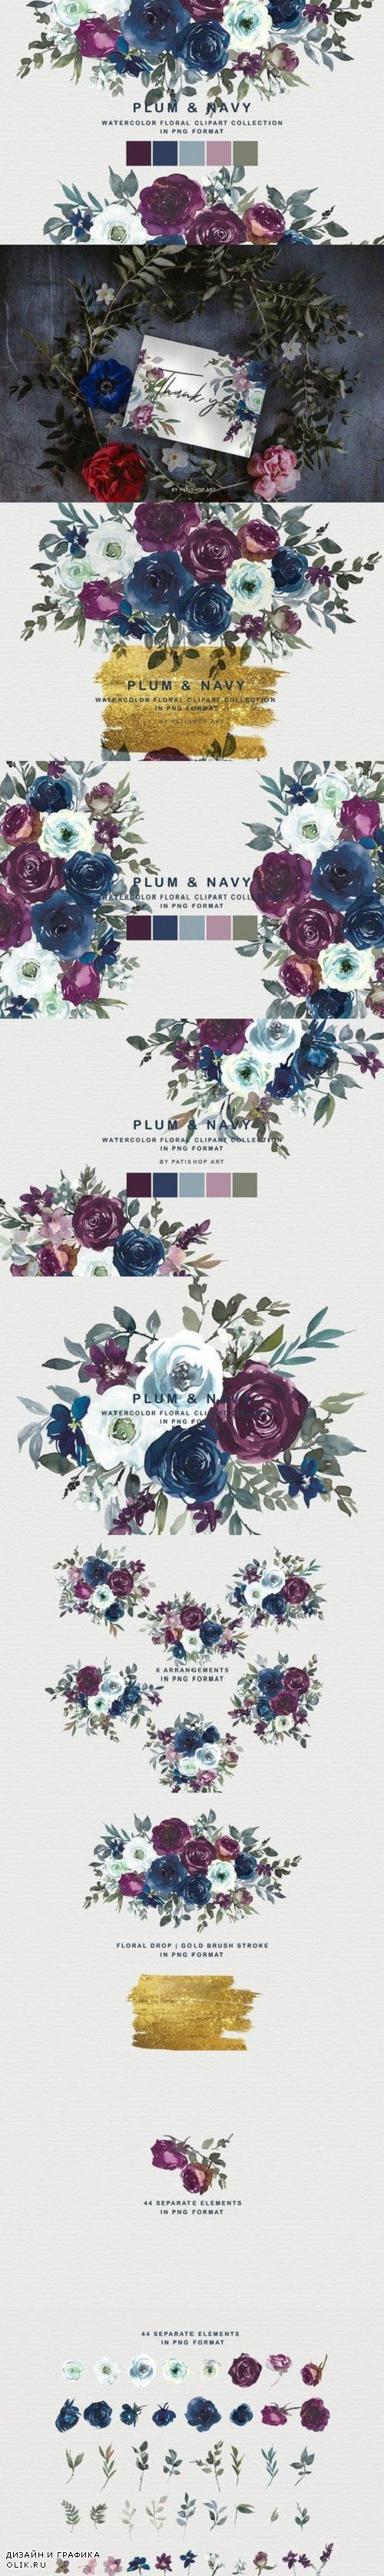 Plum & Navy Floral Clipart PNG - 4277614